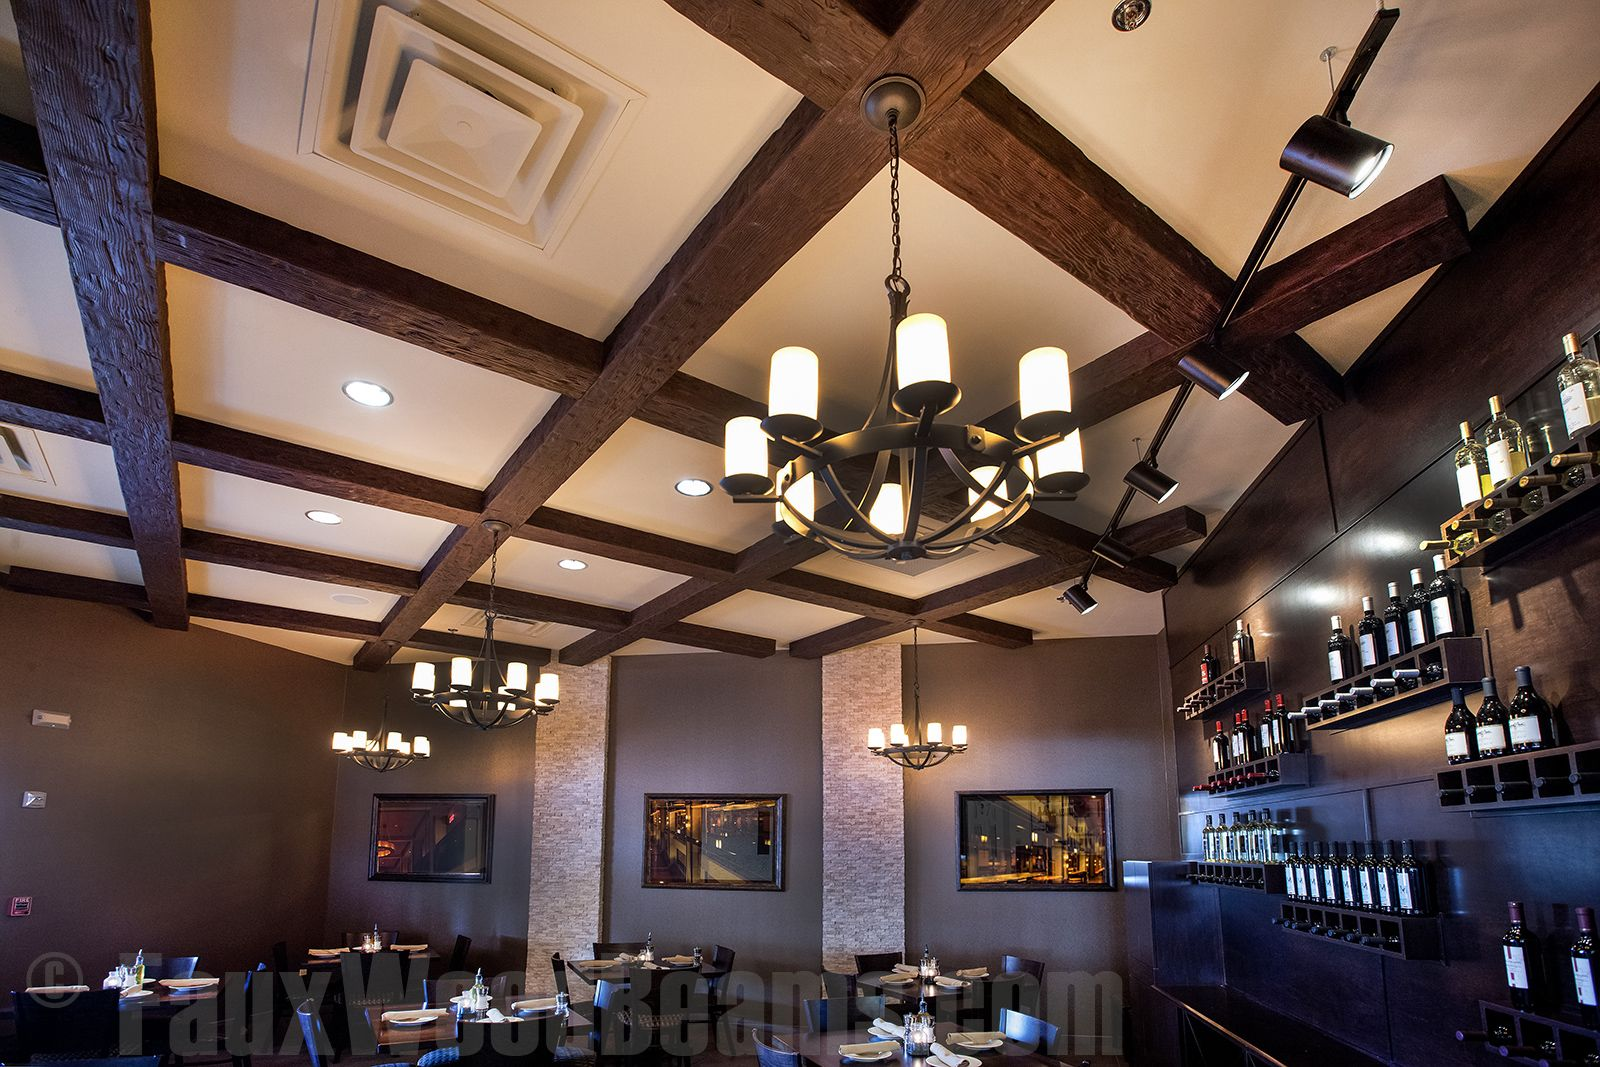 Diy hanging lights how to install on faux beams vaulted ceiling